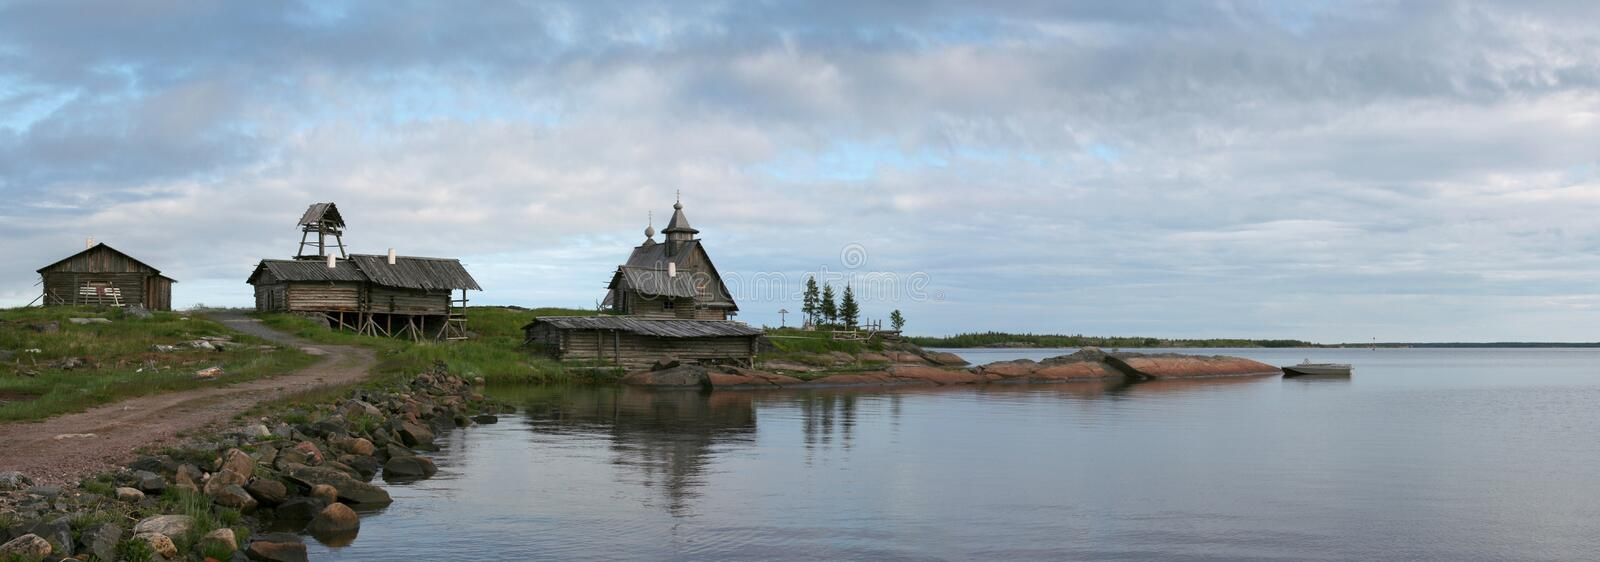 Solovetsky islands. Old church. Solovetsky islands (Russia stock image